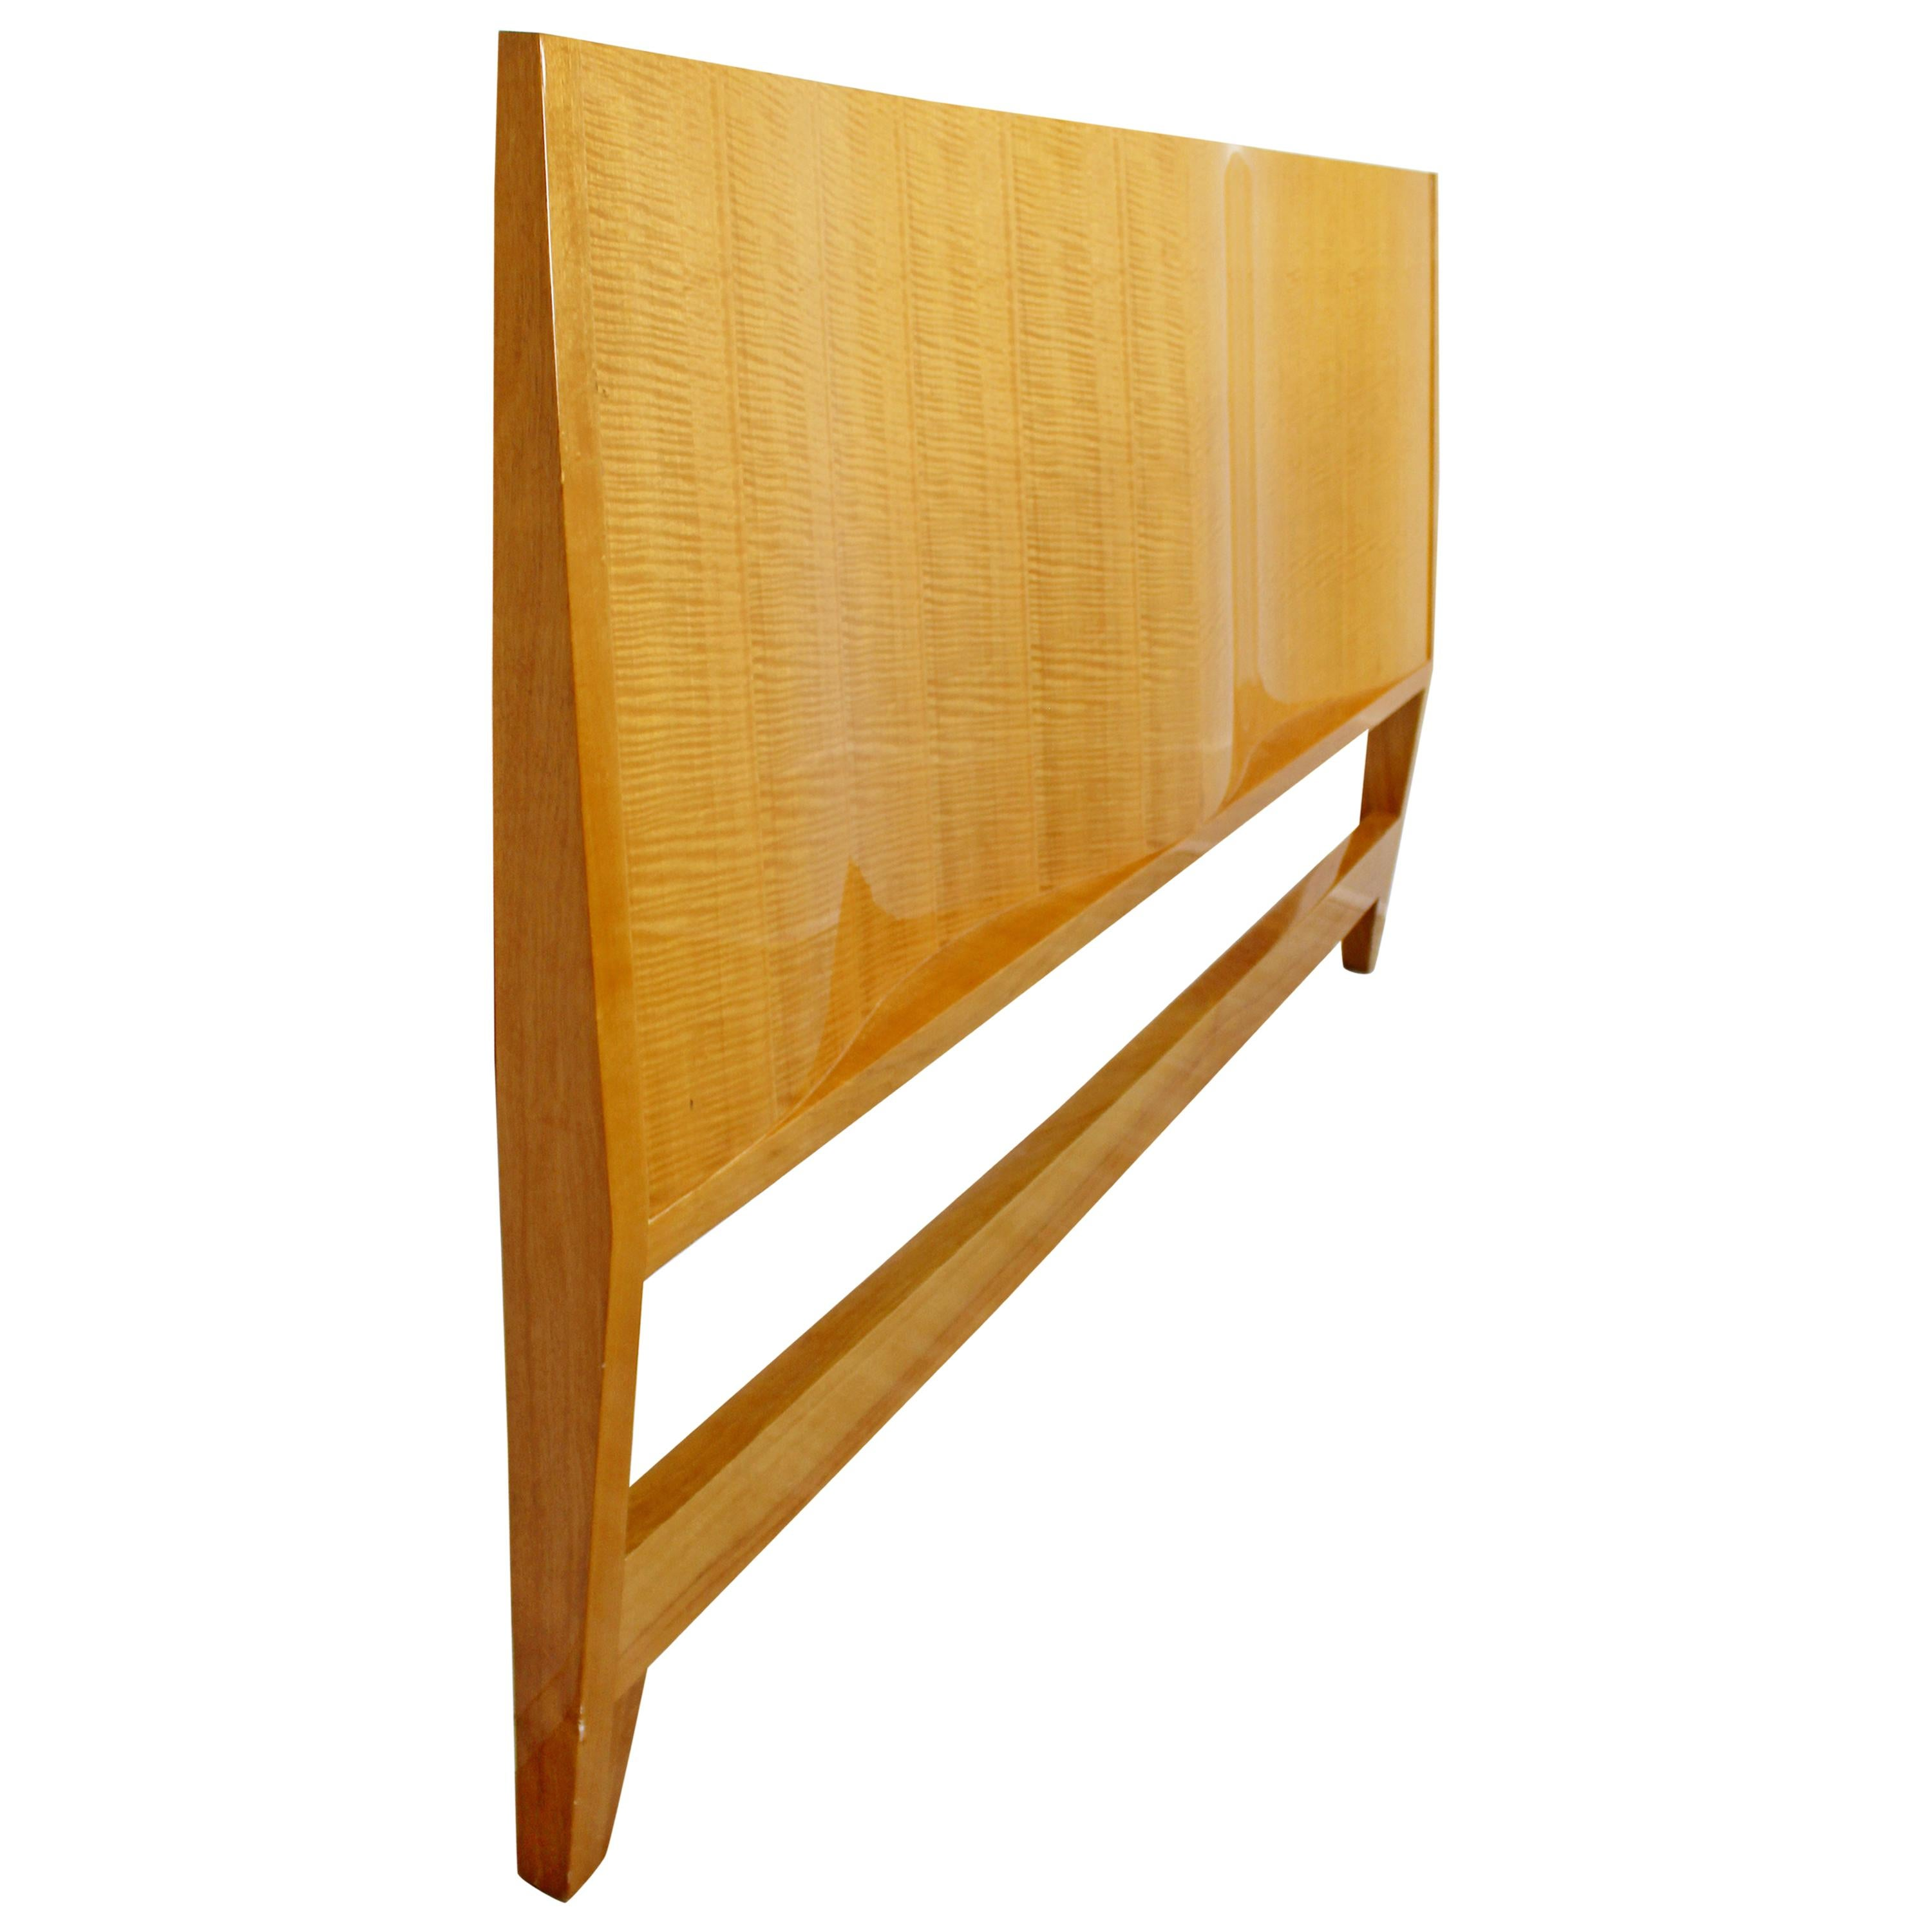 Mid-Century Modern Lacquered Maple Wavy Curved King Size Headboard, 1970s